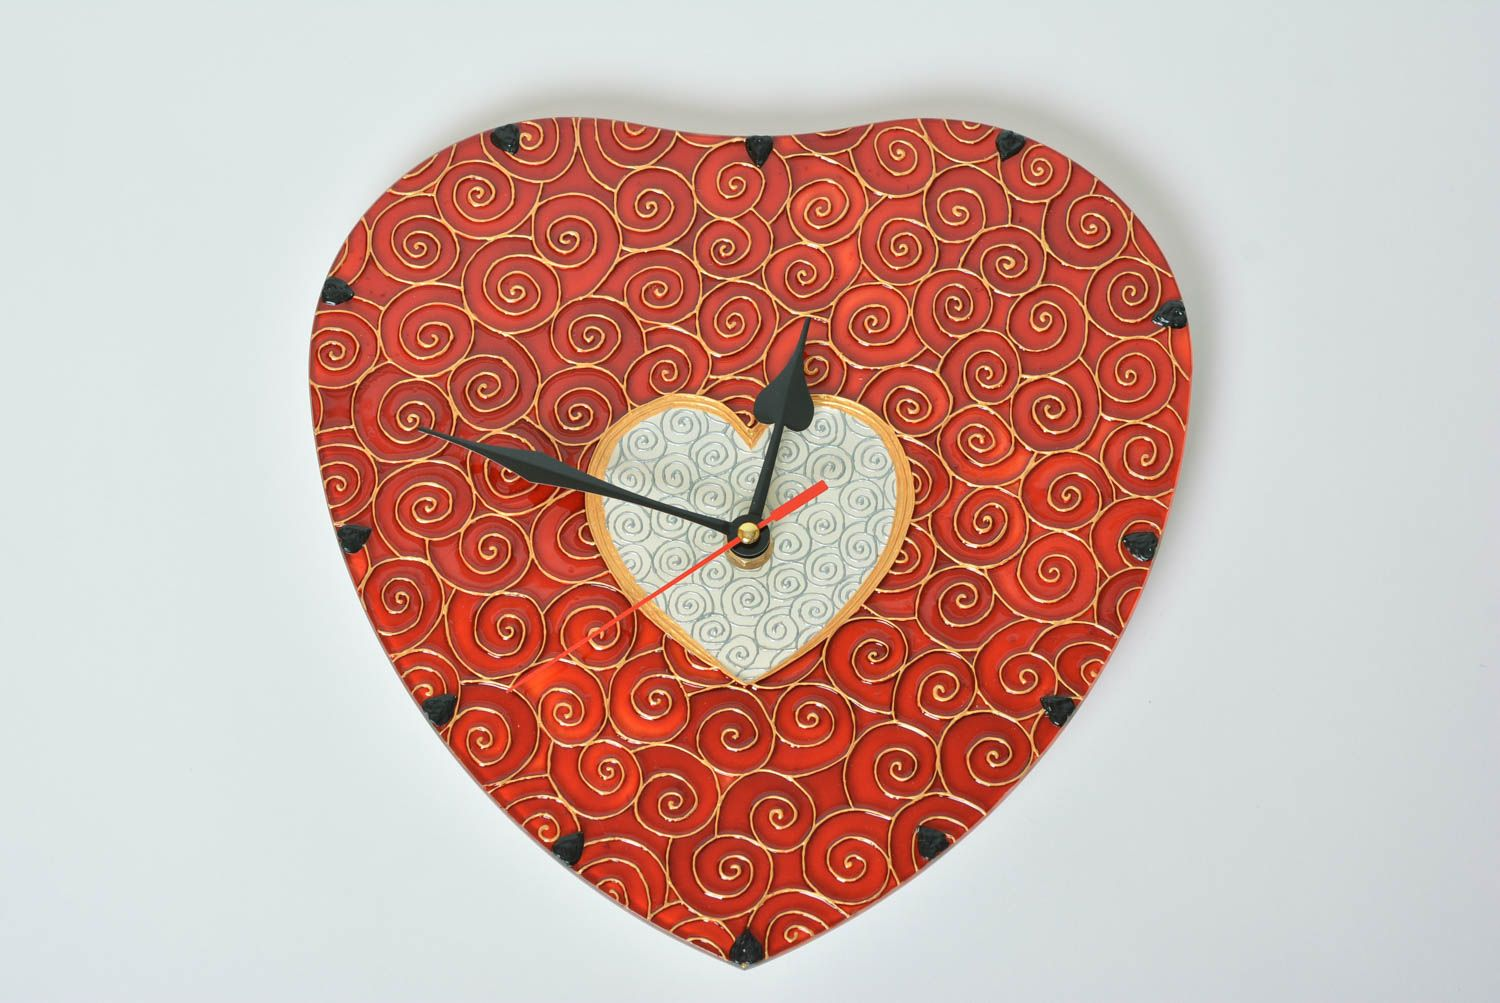 Madeheart Handmade Heart Shaped Clock Stained Glass Wall Clock